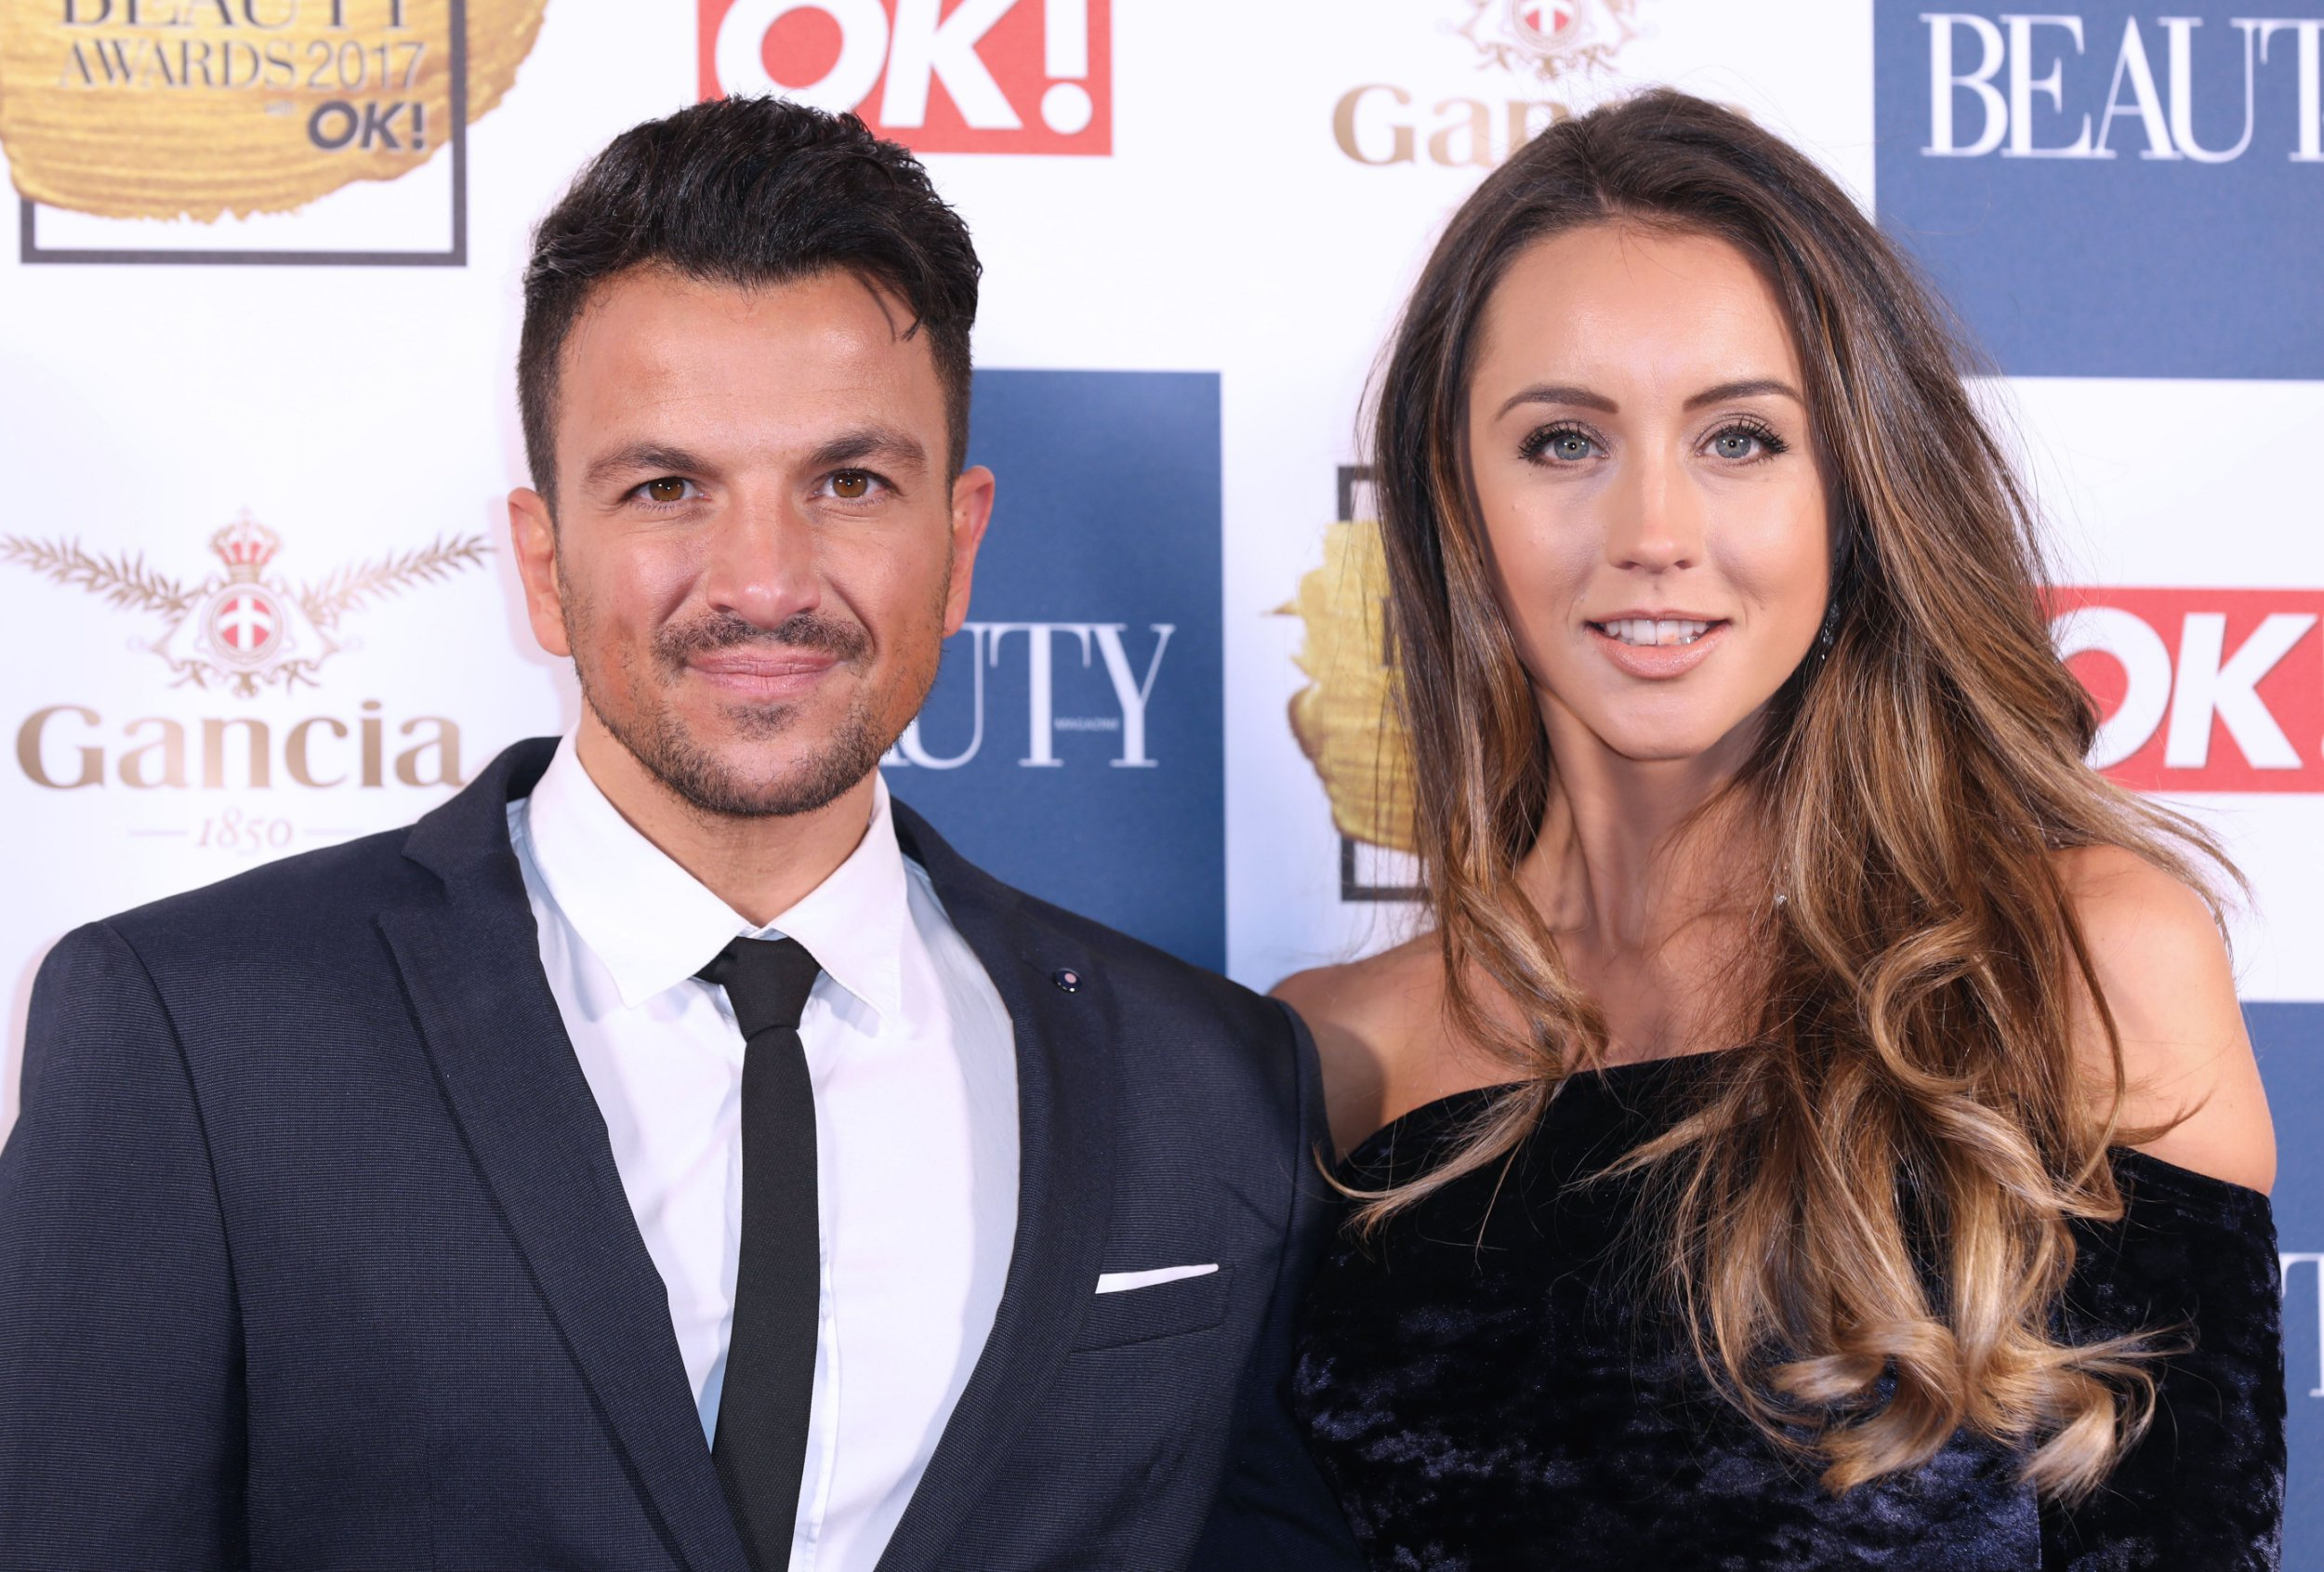 Peter Andre gives us all the feels with heartfelt message to wife Emily: 'You are my rock'